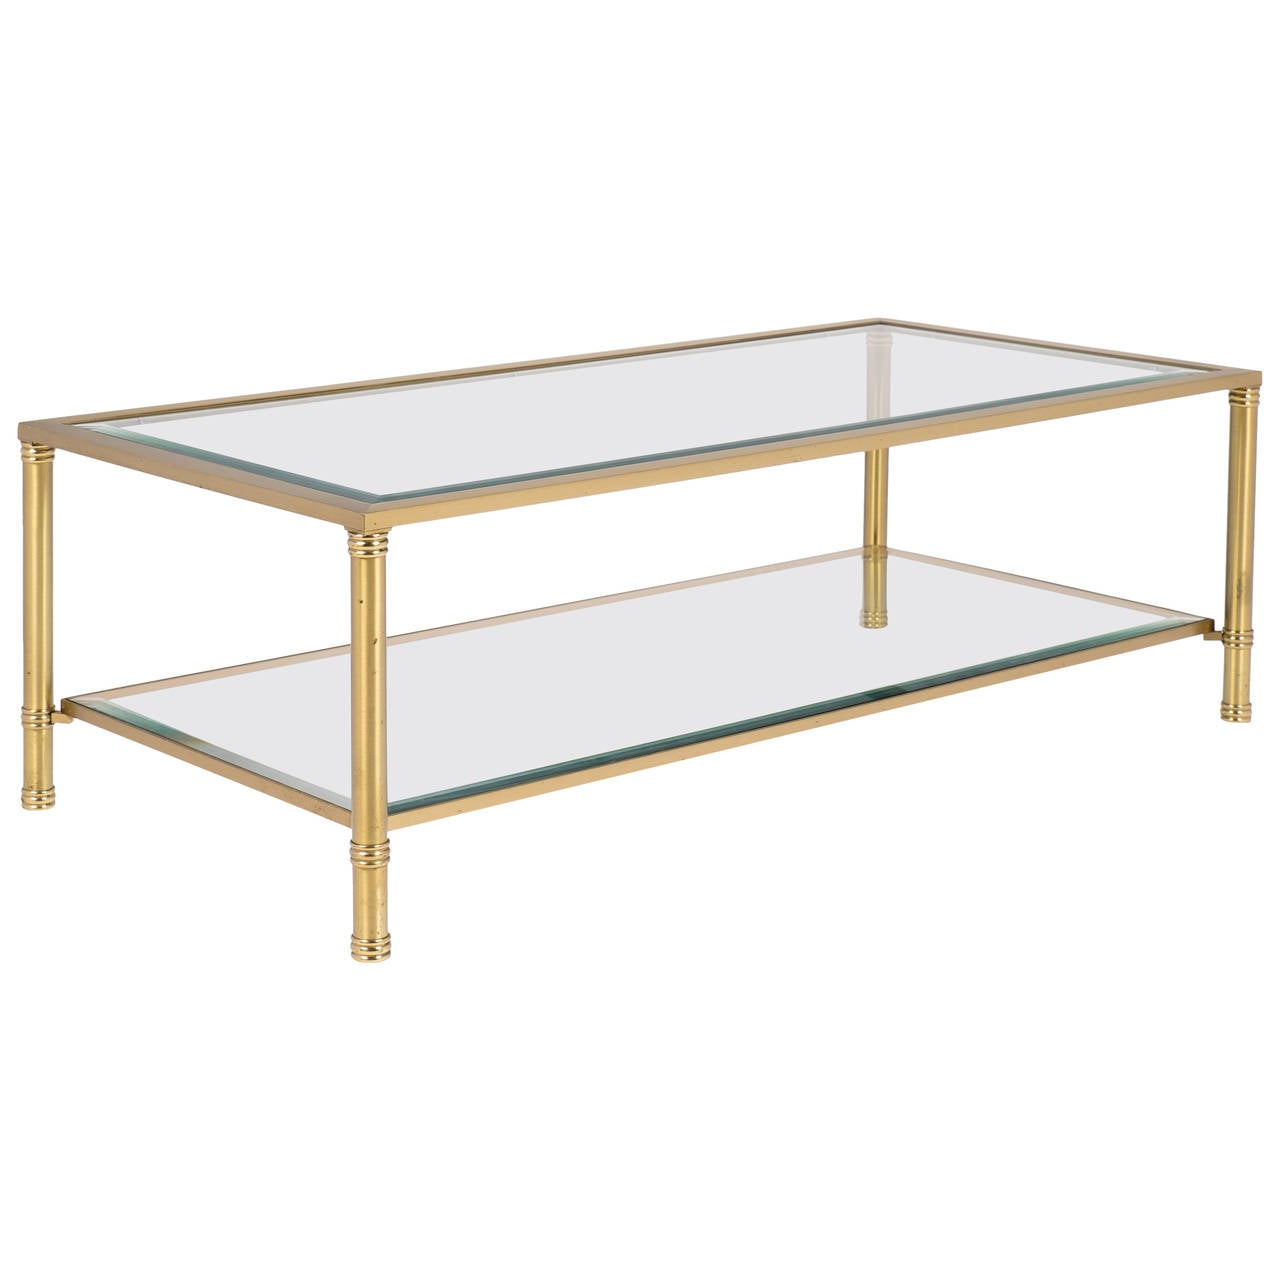 French vintage brass coffee table for sale at 1stdibs for Vintage coffee table